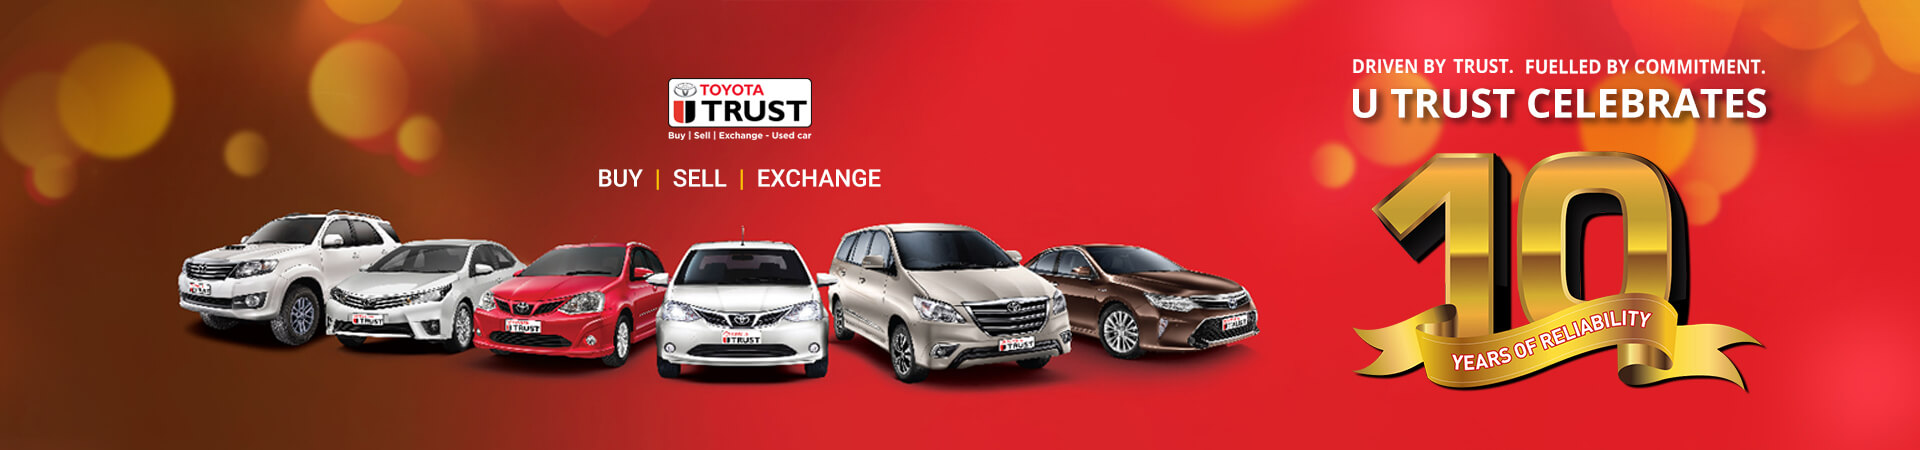 Used Cars, Toyota Used Cars   Official website of Toyota U Trust